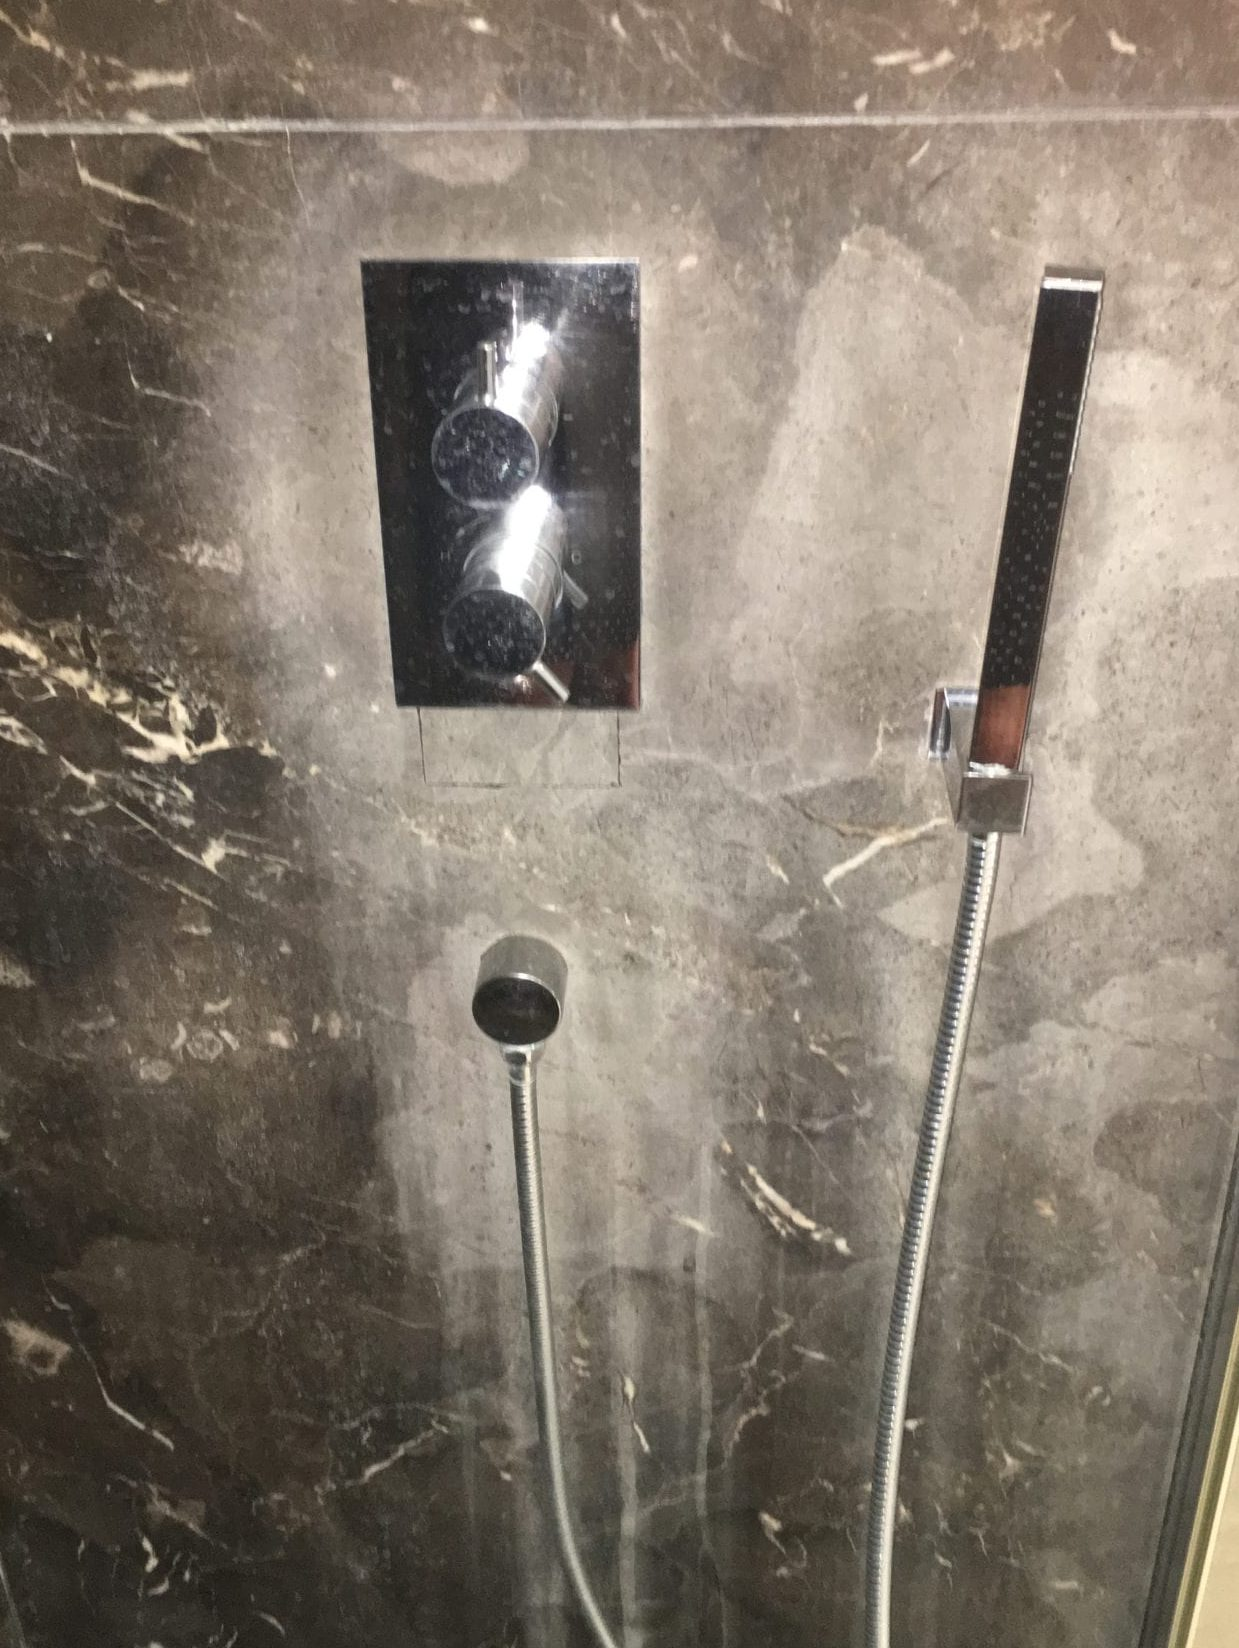 Marble shower restoration - removing limescale from stone bathroom walls